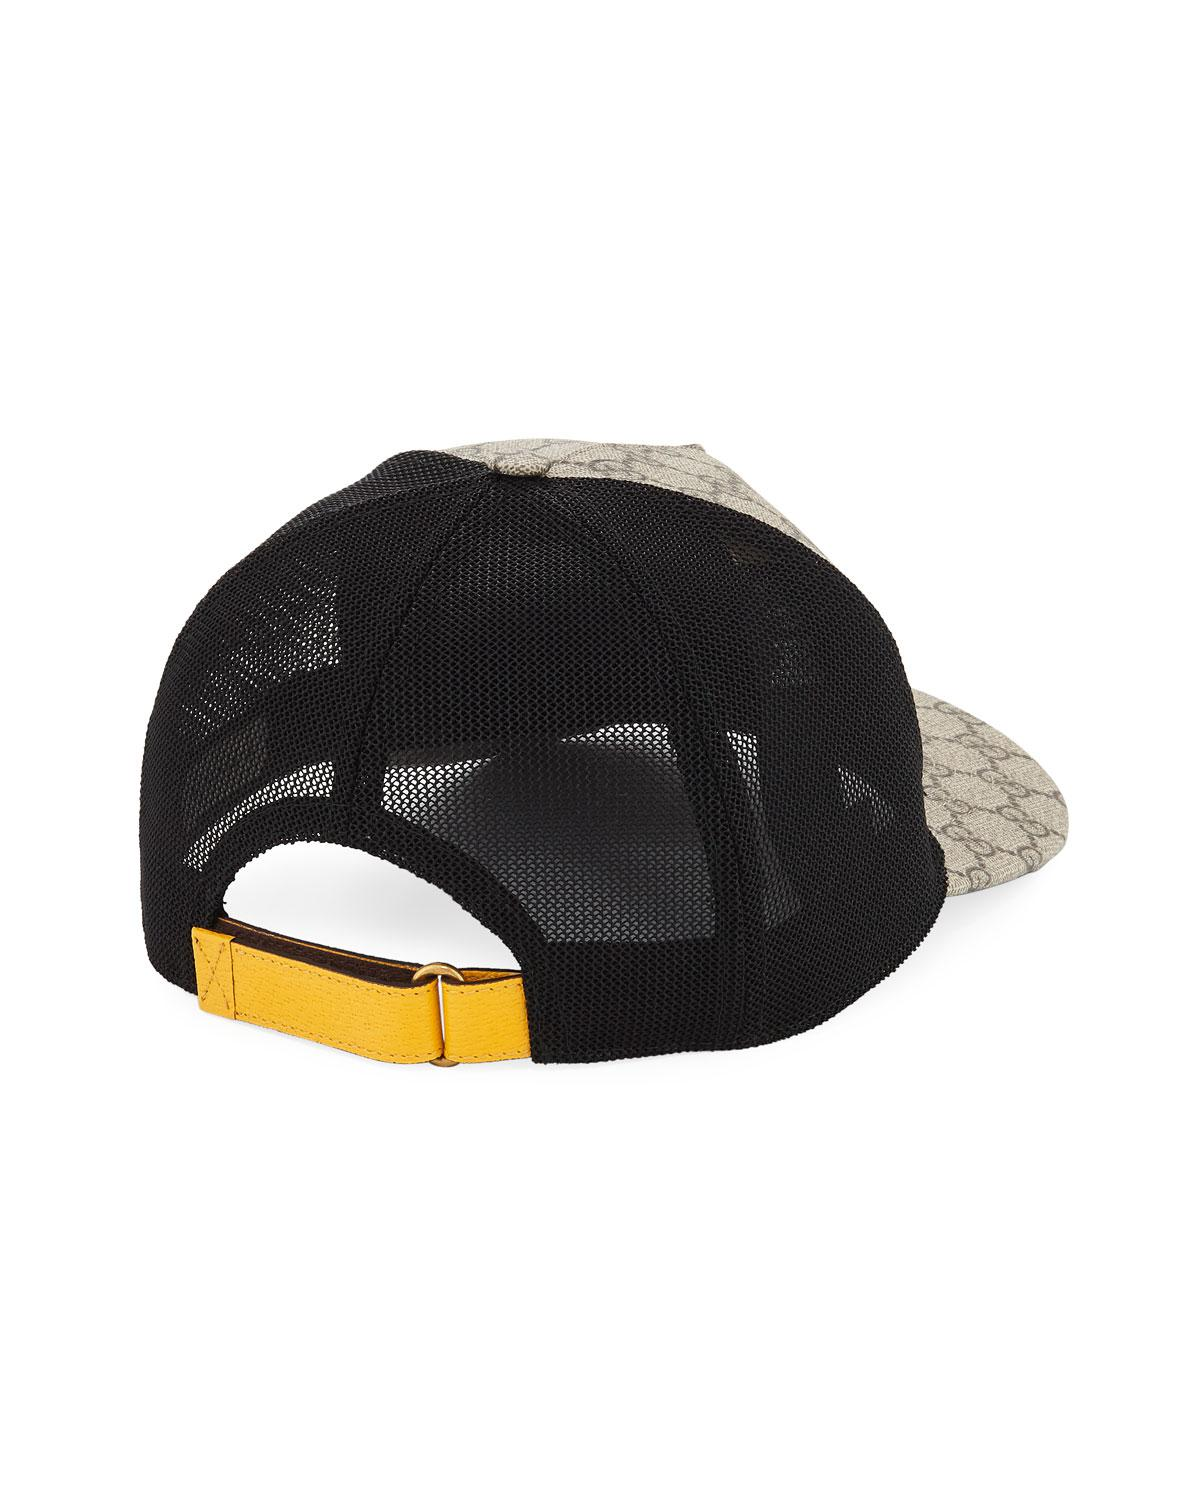 d491366c4ad Gucci GG Supreme Baseball Cap With Feline Head in Black for Men - Lyst